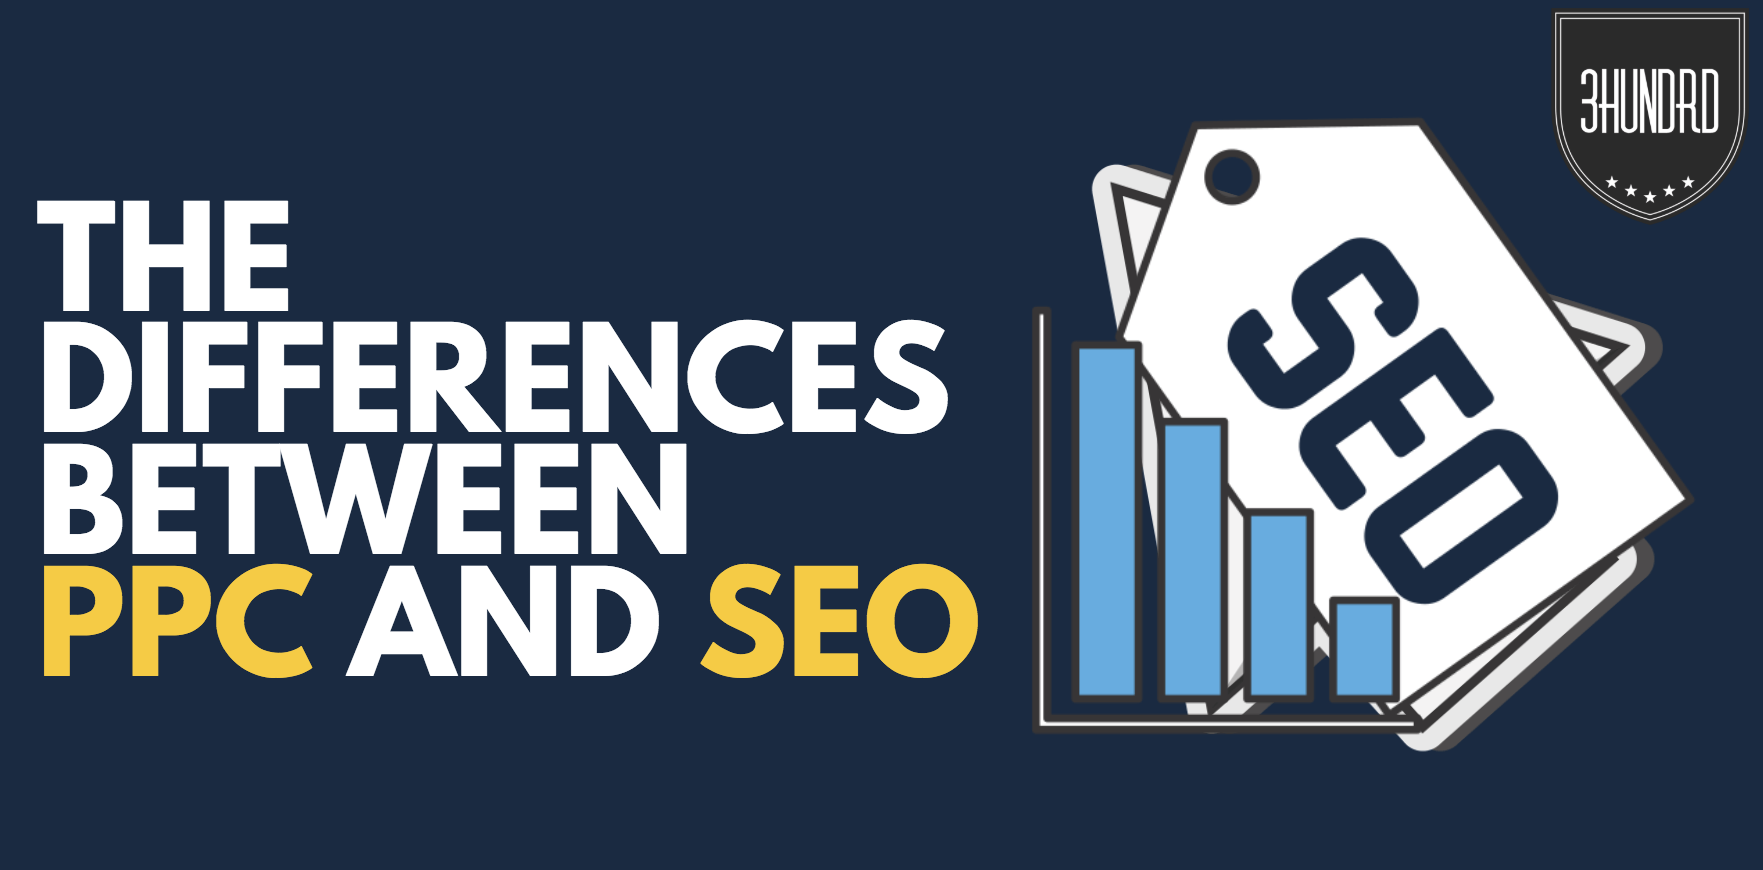 the differences between PPC and SEO